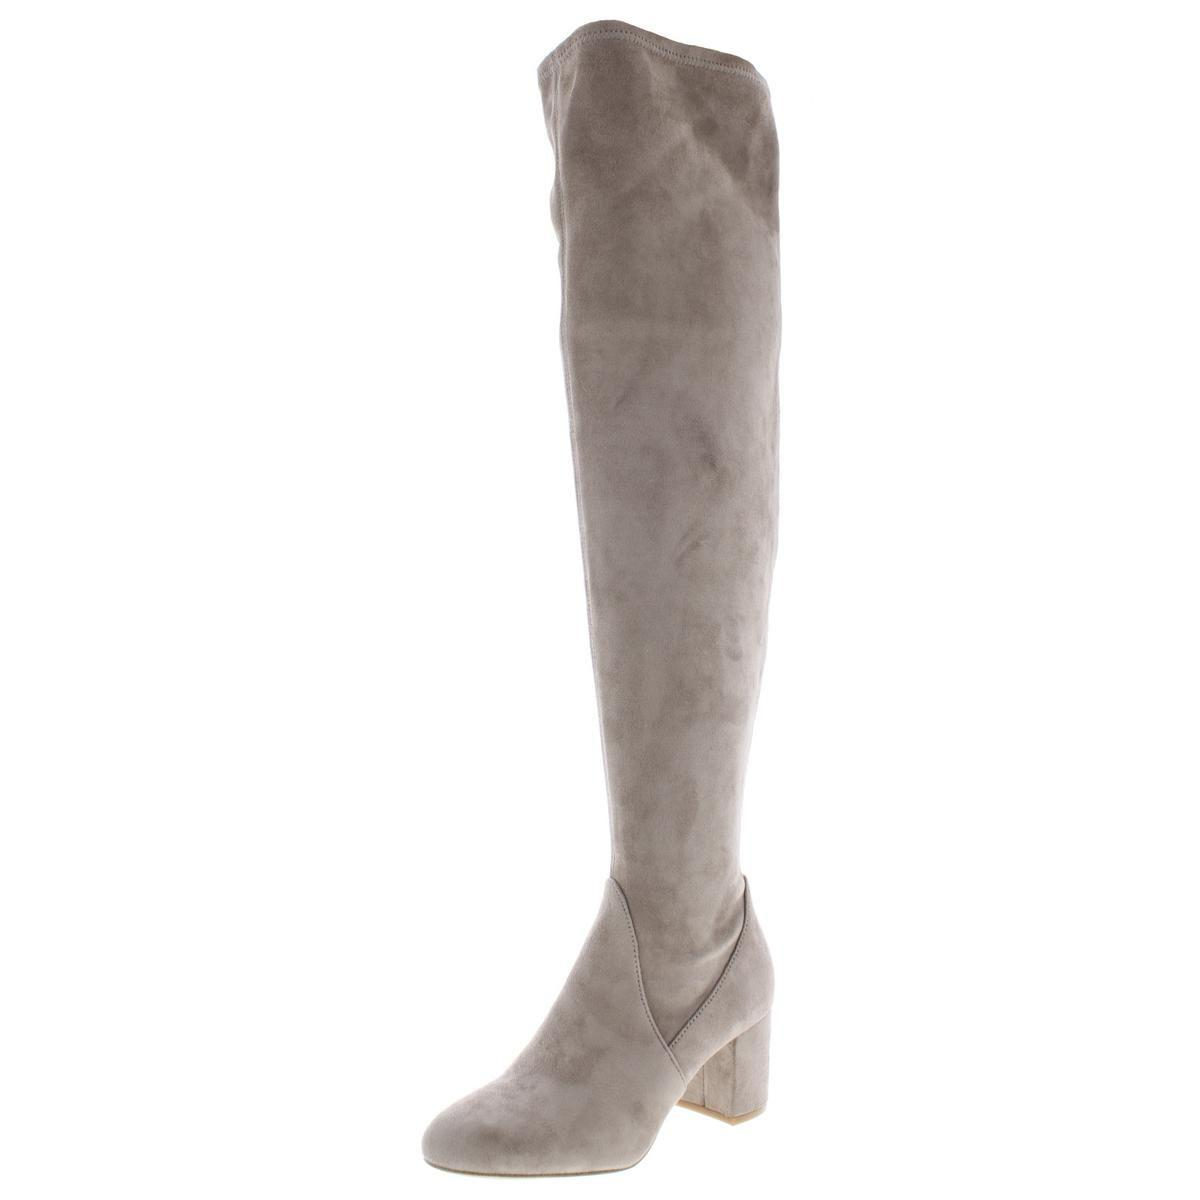 8f65d66ff6b INC International Concepts. Natural Inc Womens Rikkie Faux Suede Fashion  Over-the-knee Boots